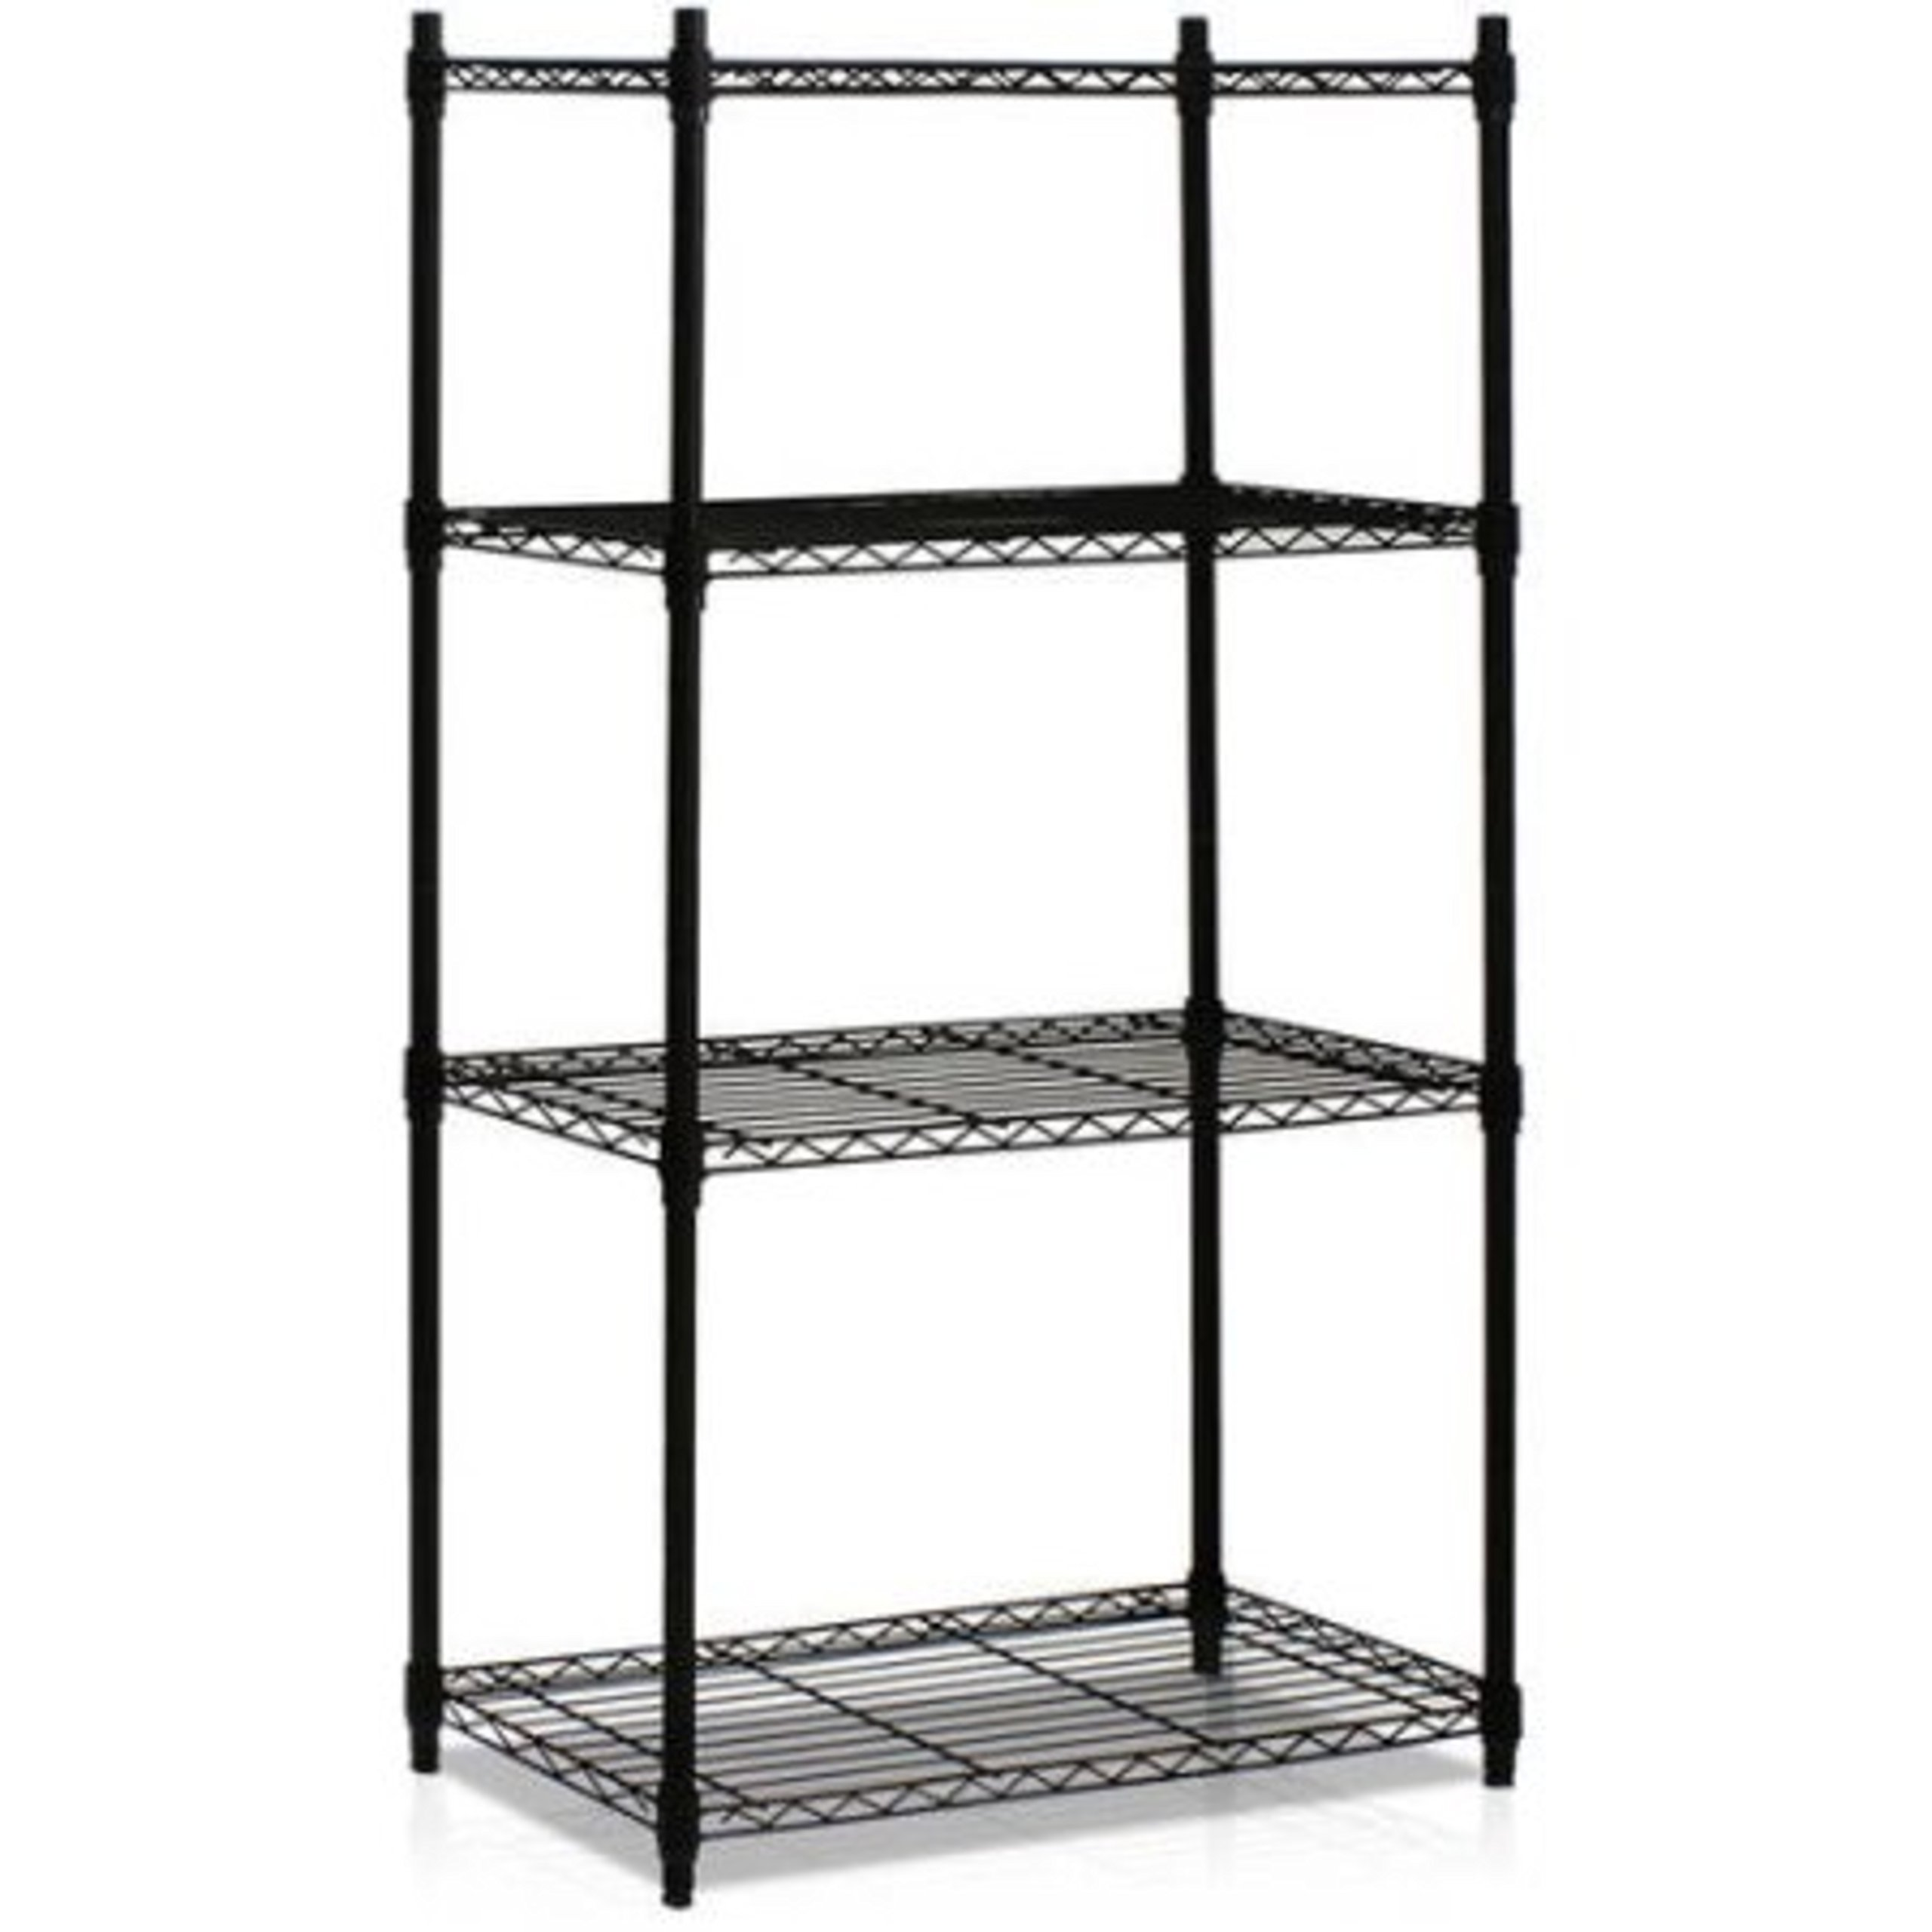 4-Tier Heavy-Duty Industrial Strength Black Chrome Wire Shelving